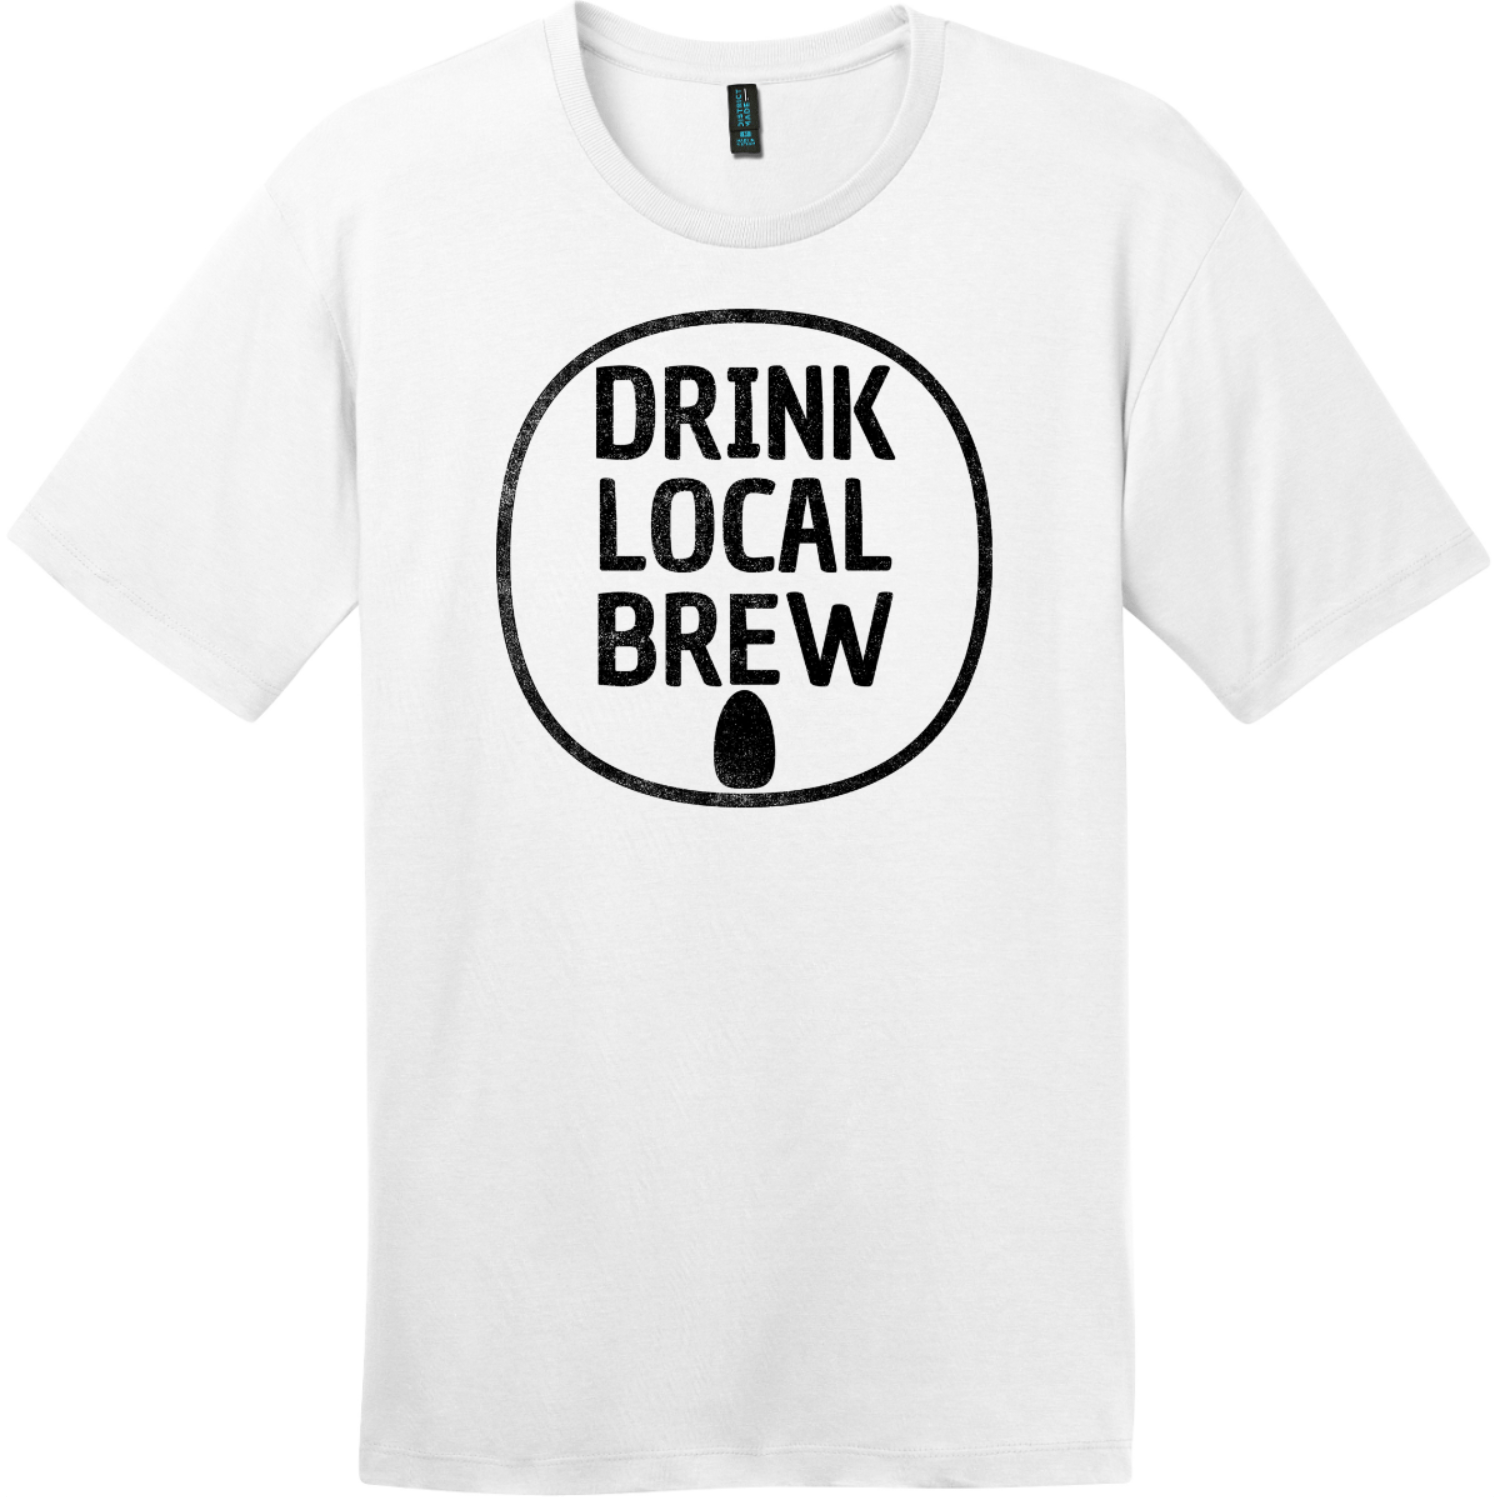 Drink Local Brew Can T-Shirt Bright White District Perfect Weight Tee DT104